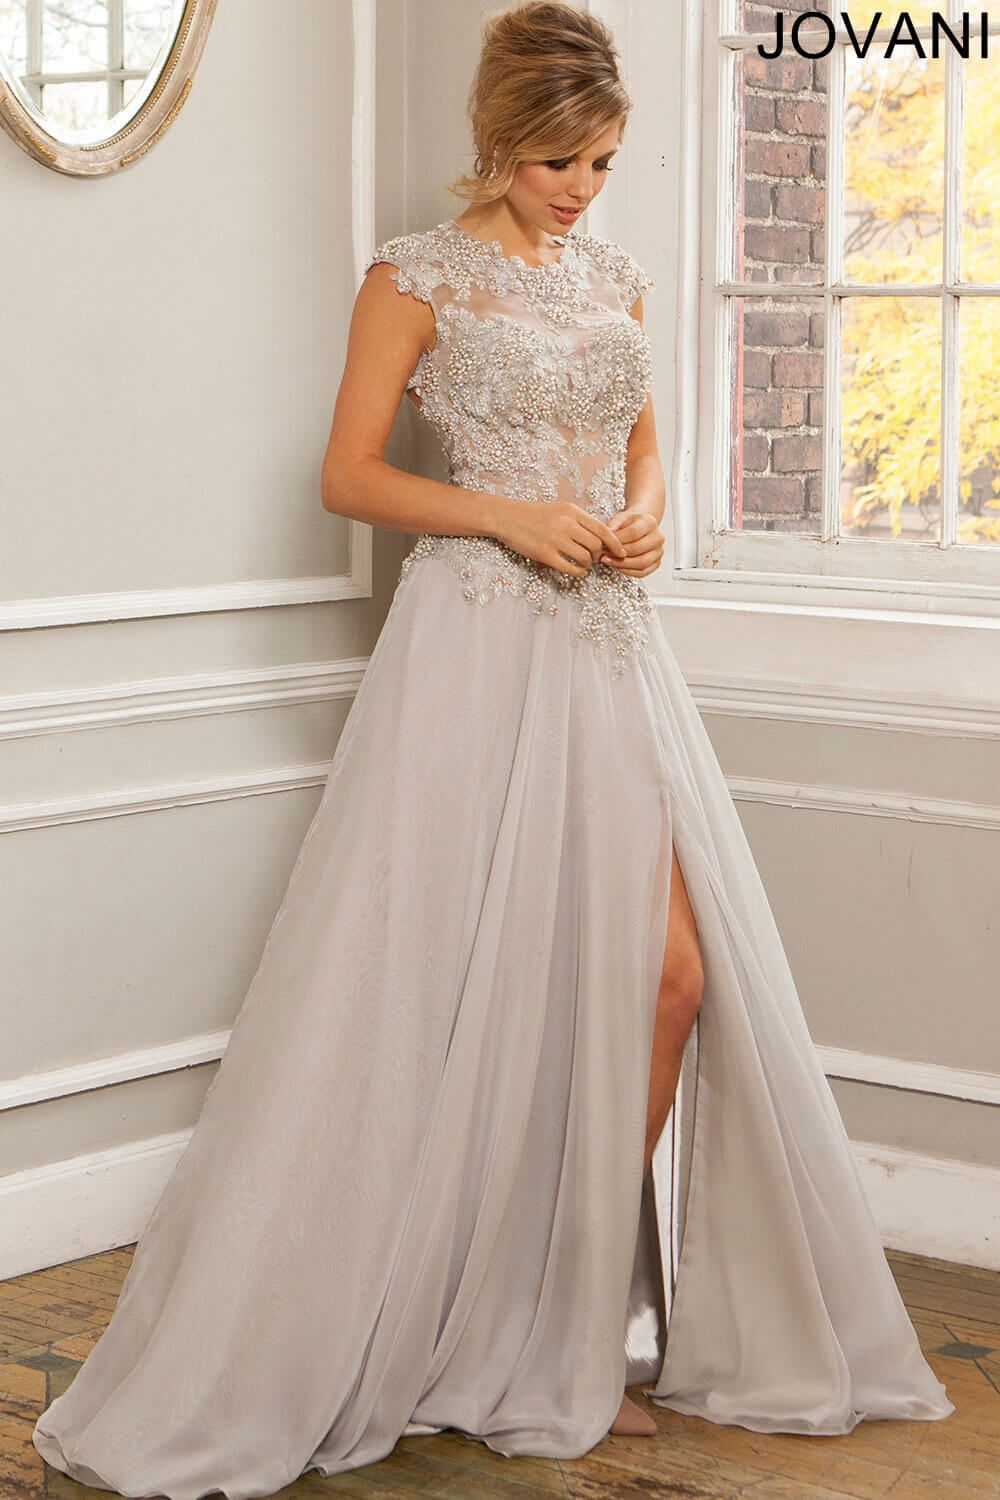 Silver Chiffon Dress 99358. Jovani. | Gowns & Balls | Pinterest ...